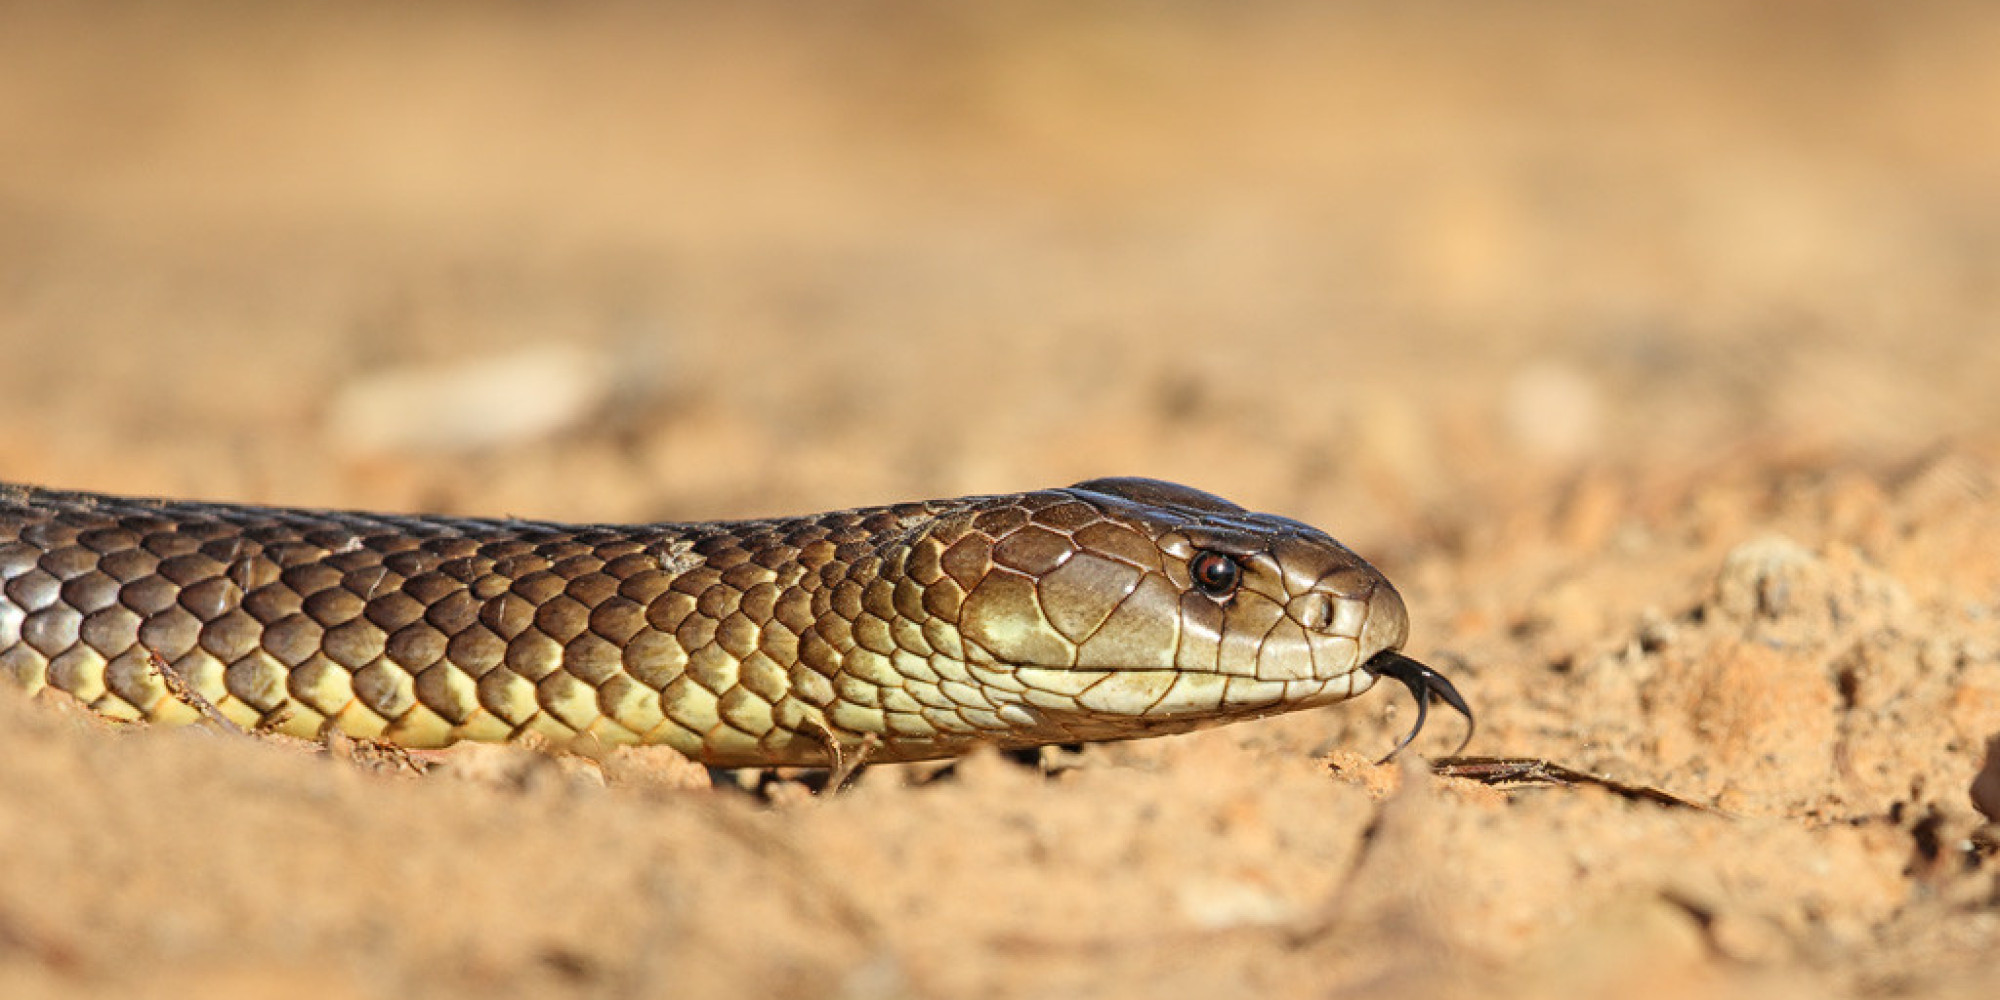 Mulga Snakes Show Unusual Tendency To Bite People Who Are